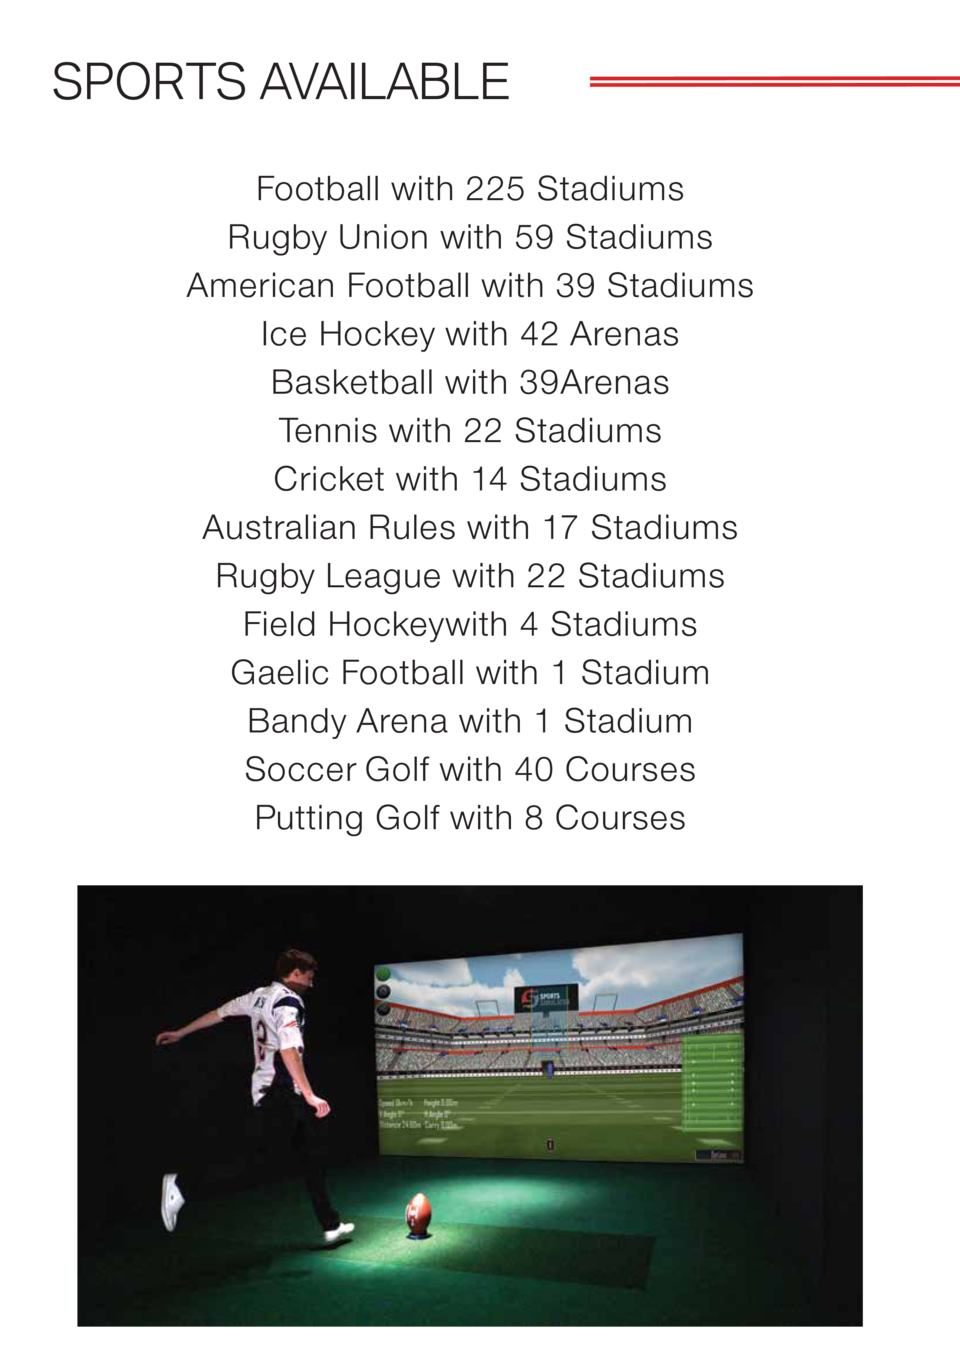 SPORTS AVAILABLE Football with 225 Stadiums Rugby Union with 59 Stadiums American Football with 39 Stadiums Ice Hockey wit...